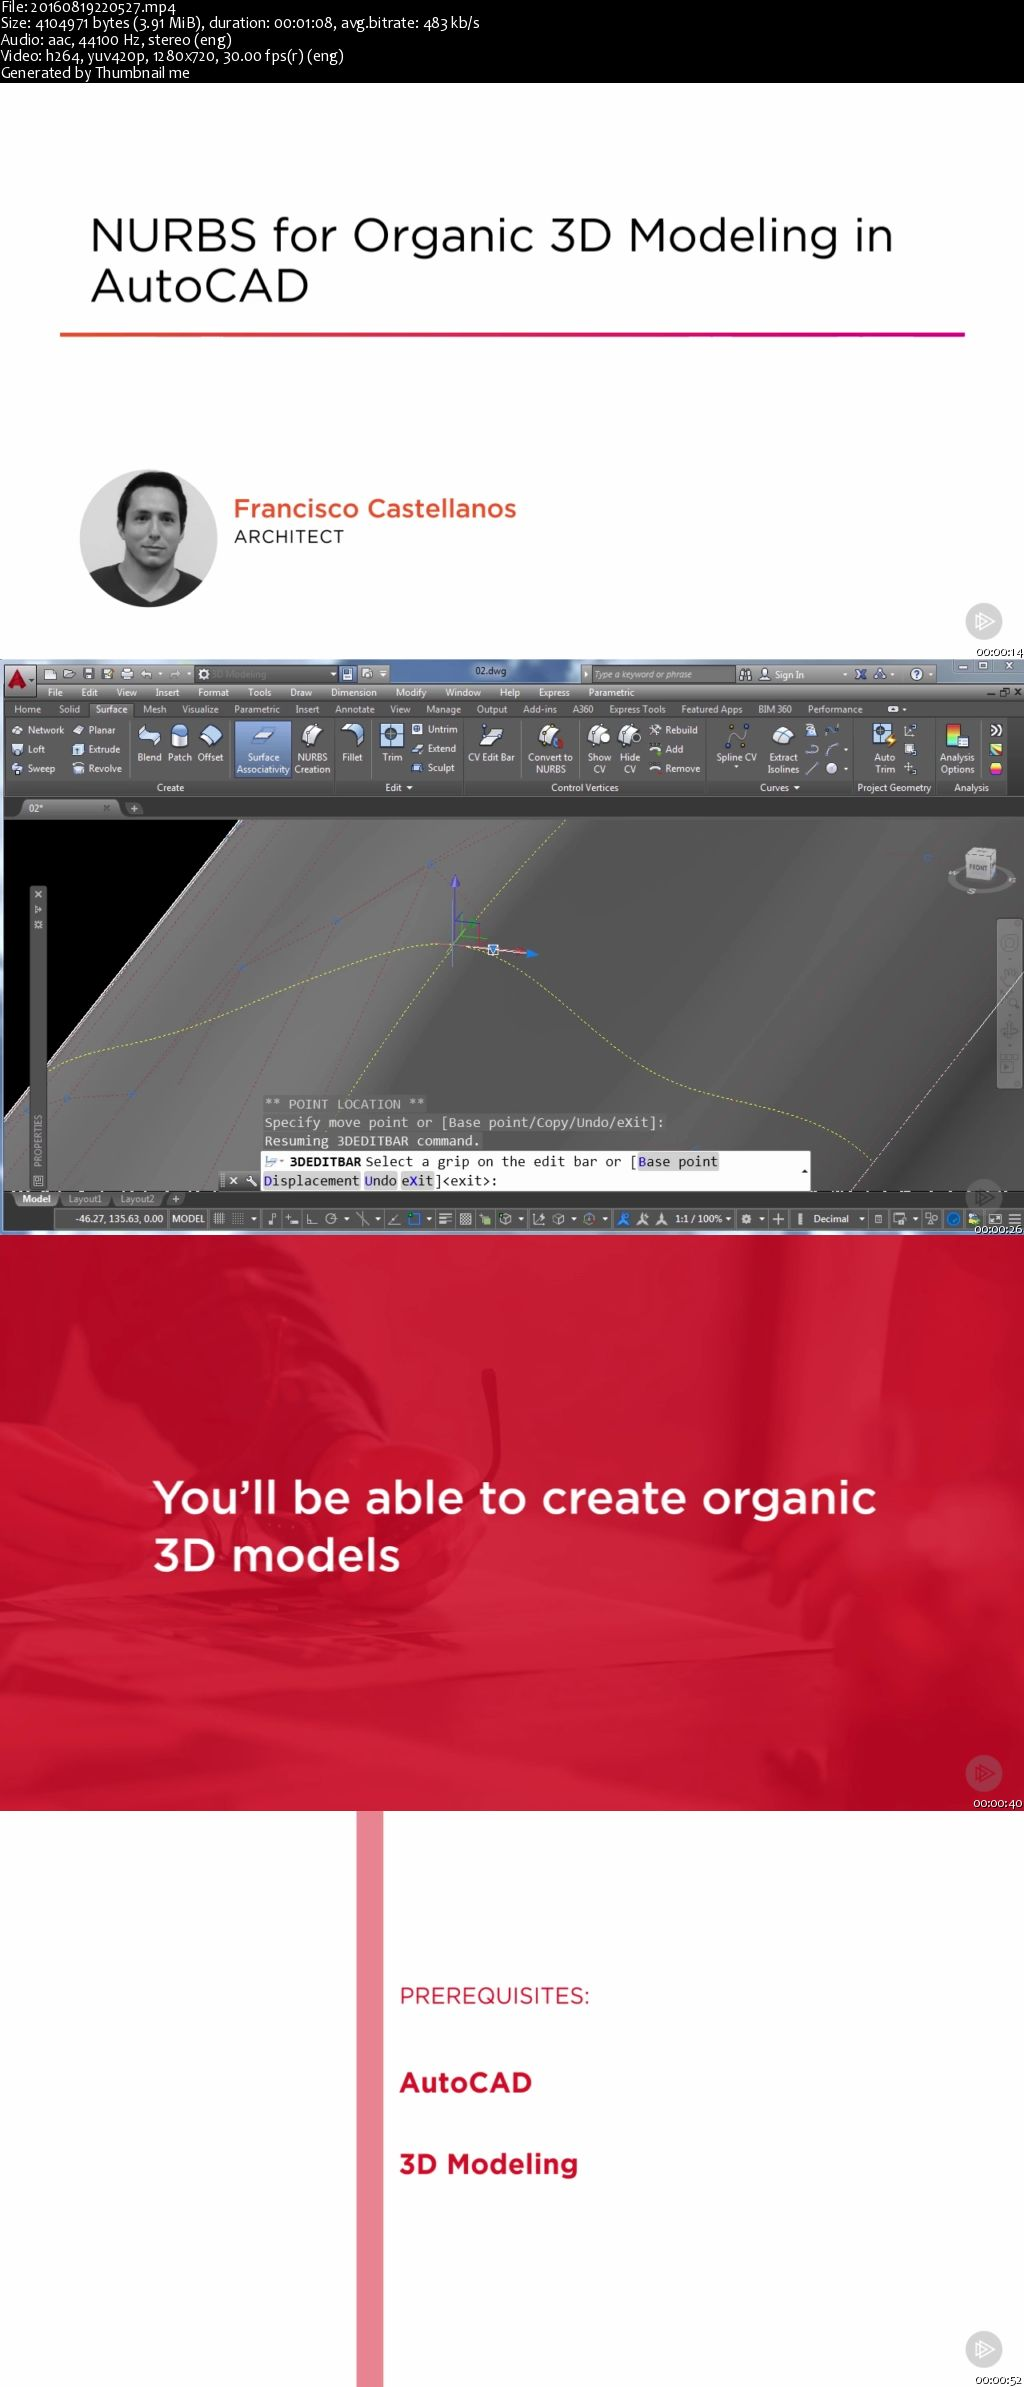 NURBS for Organic 3D Modeling in AutoCAD (2016)